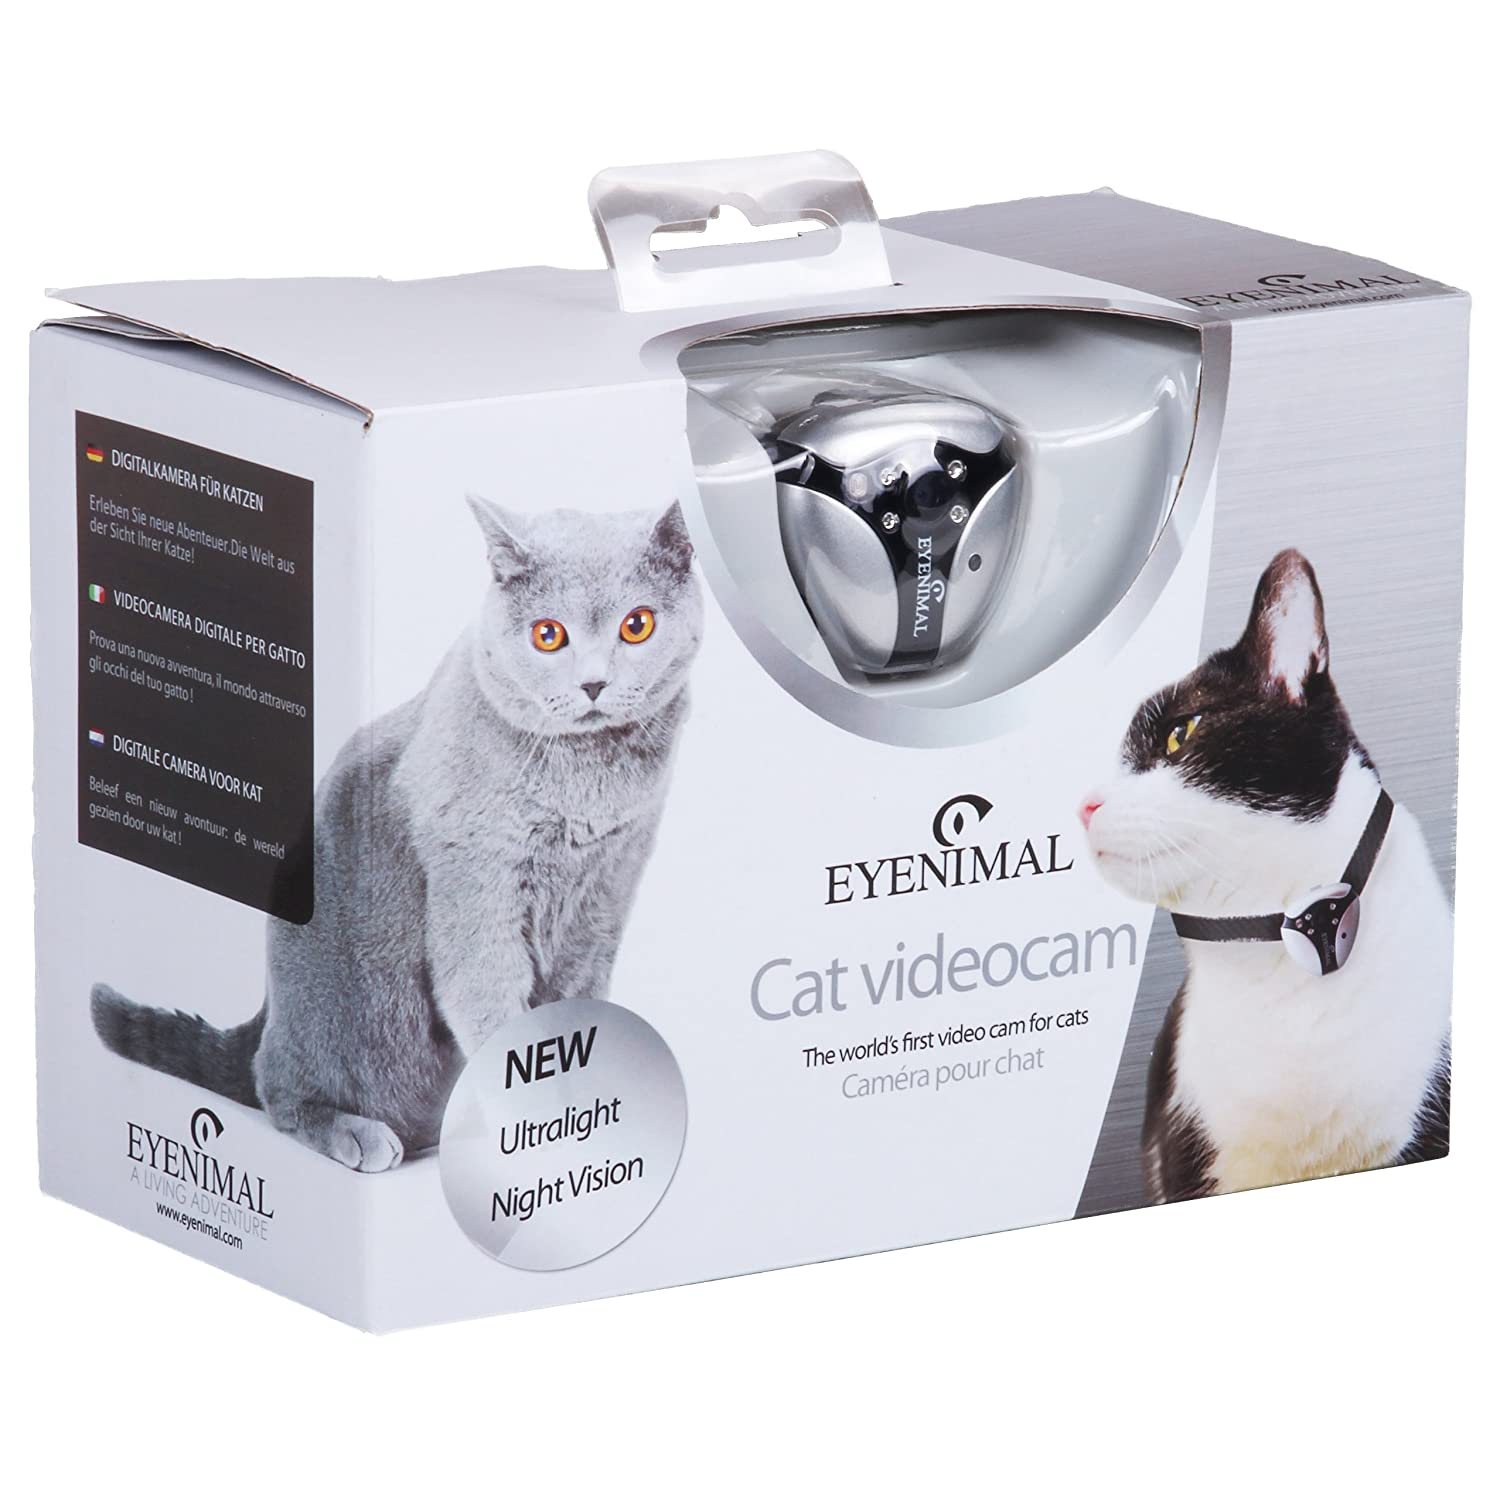 Get the cat collar camera on Amazon